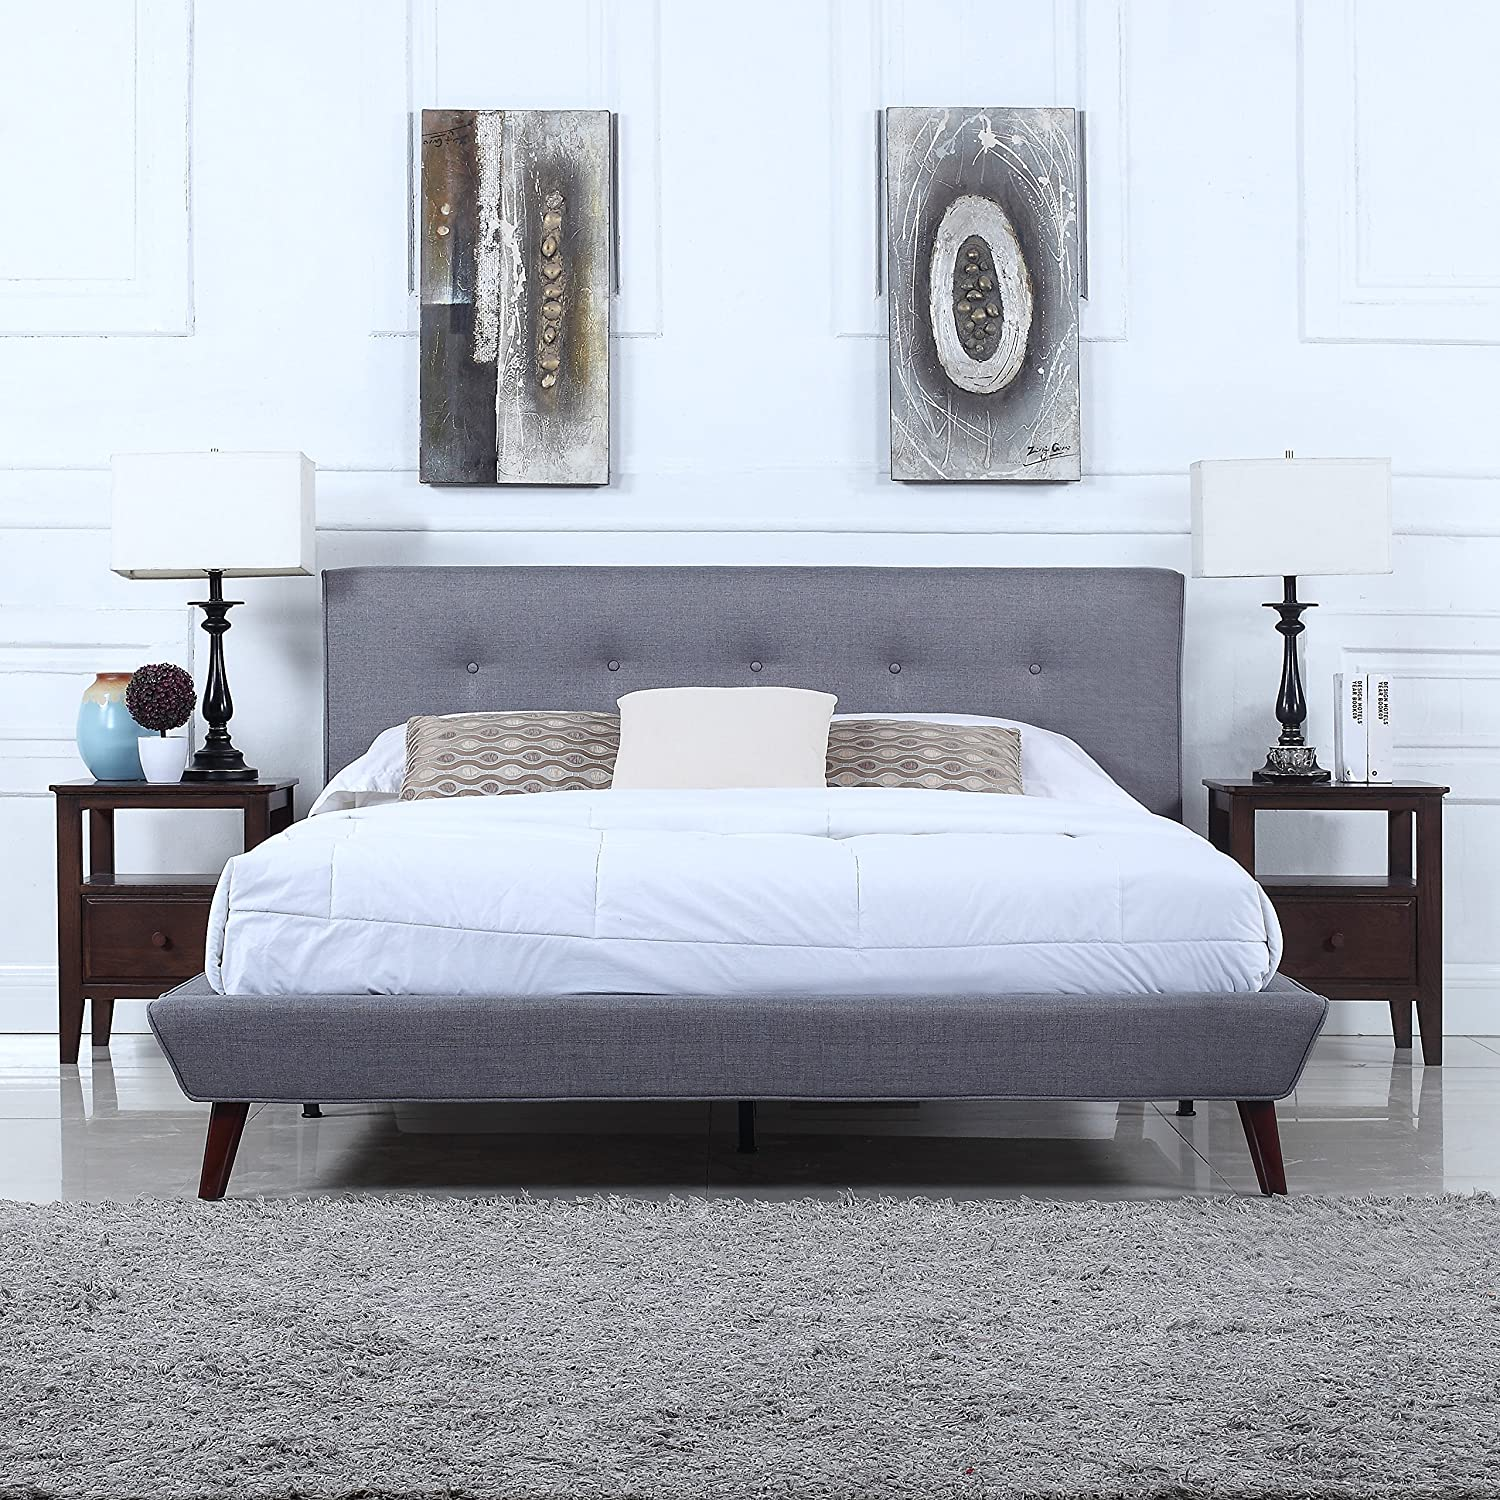 way bedroom from things craft headboard queen magnolia king shiplap this for v curved nostalgic collection frm bed look products be top home used has the farmhouse to of